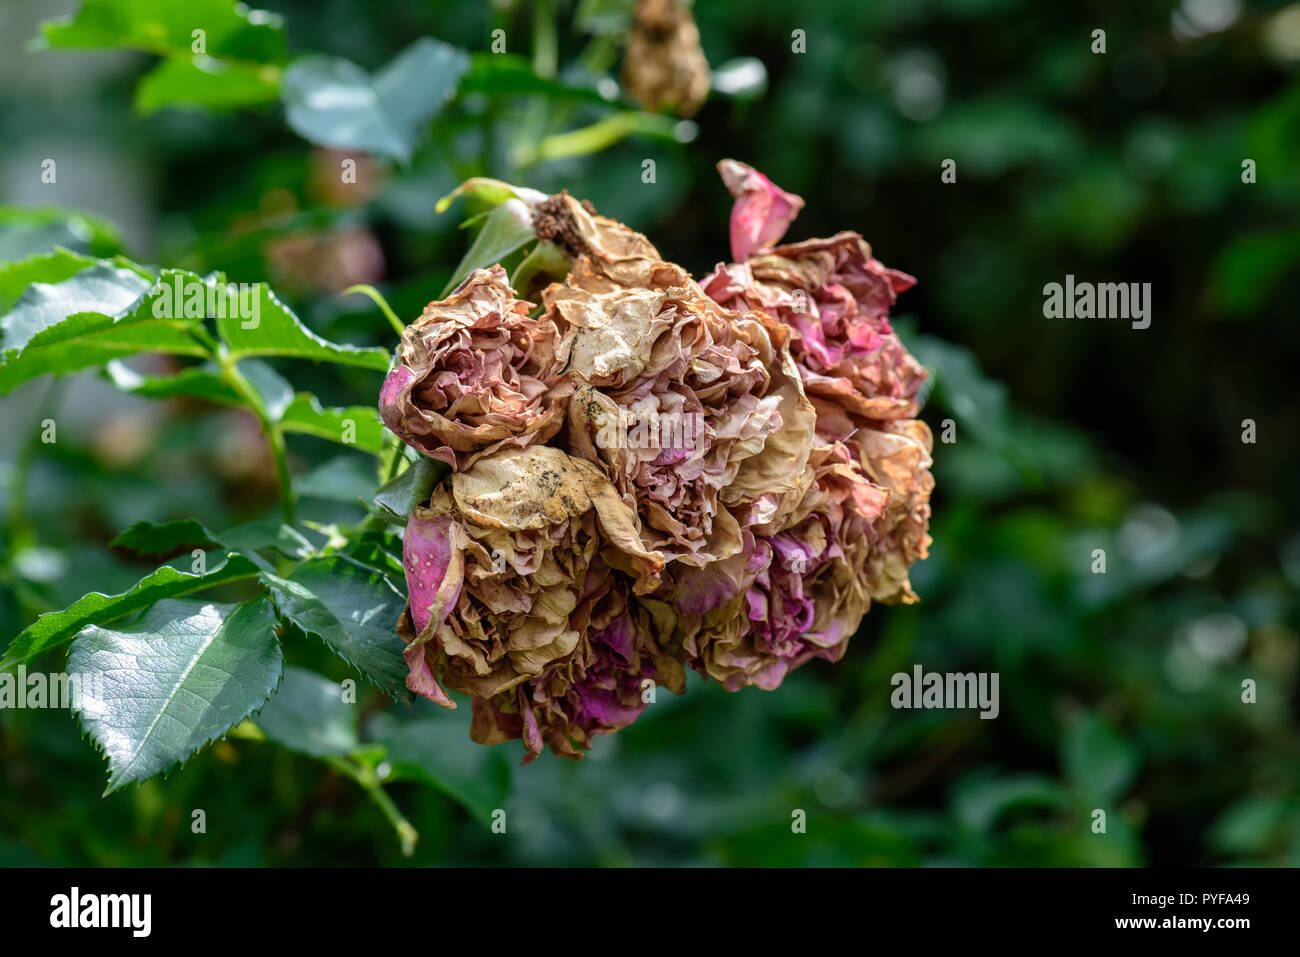 Color outdoor nature flower image of a bunch of fading rose blossoms on natural blurred green background,symbolic age,decay,fade,wrinkled - Stock Image